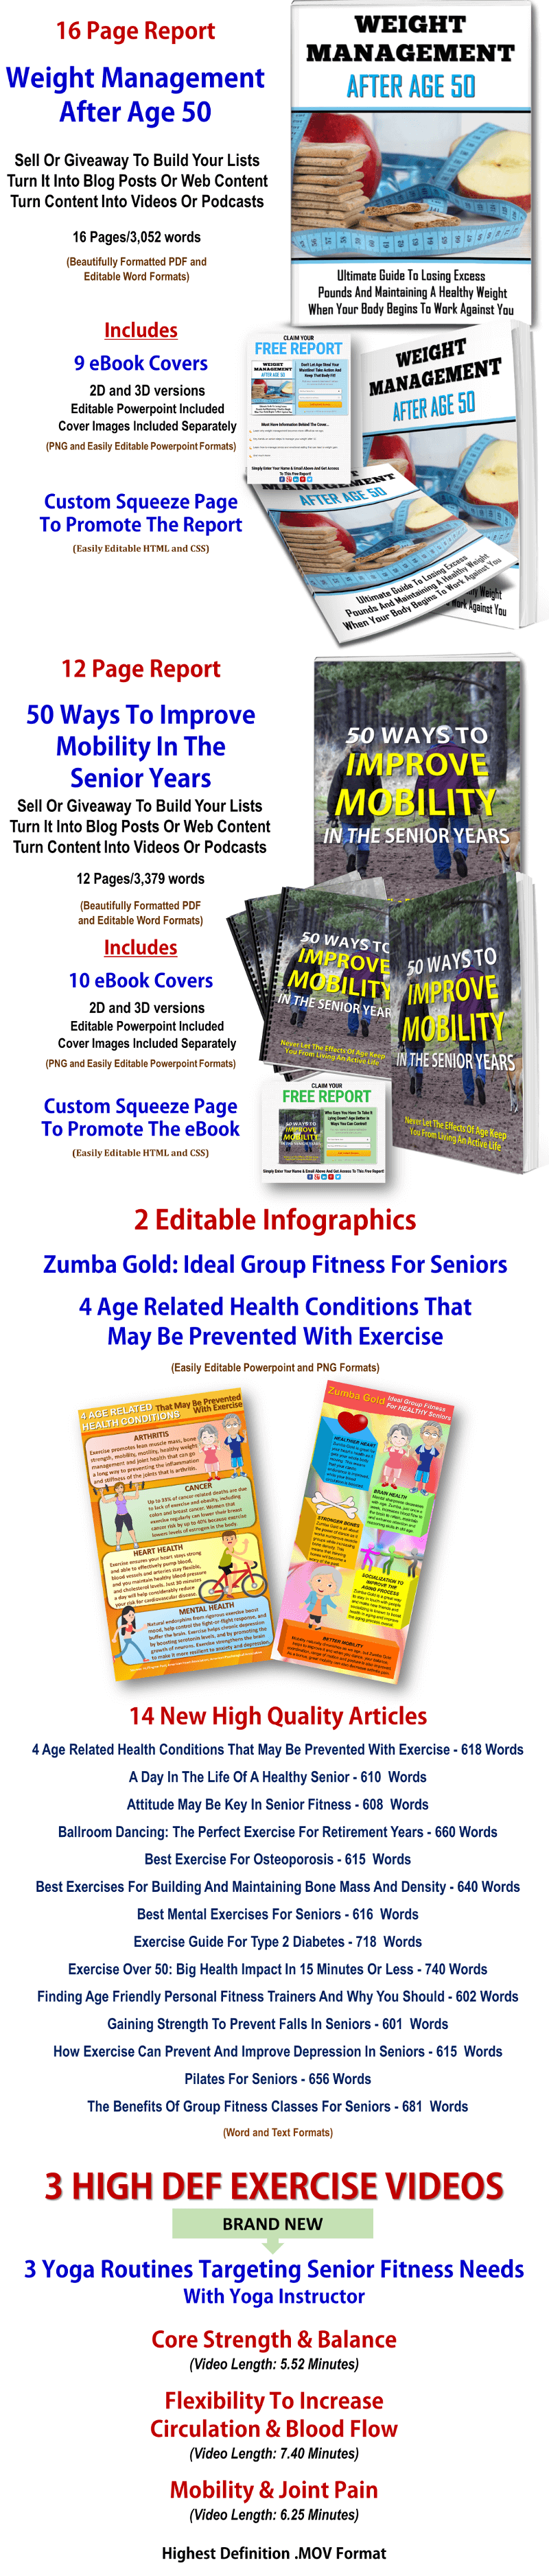 Mobility For Seniors, Weight Loss After 50 Reports & Aging Fitness Videos, Articles PLR Multi Pack